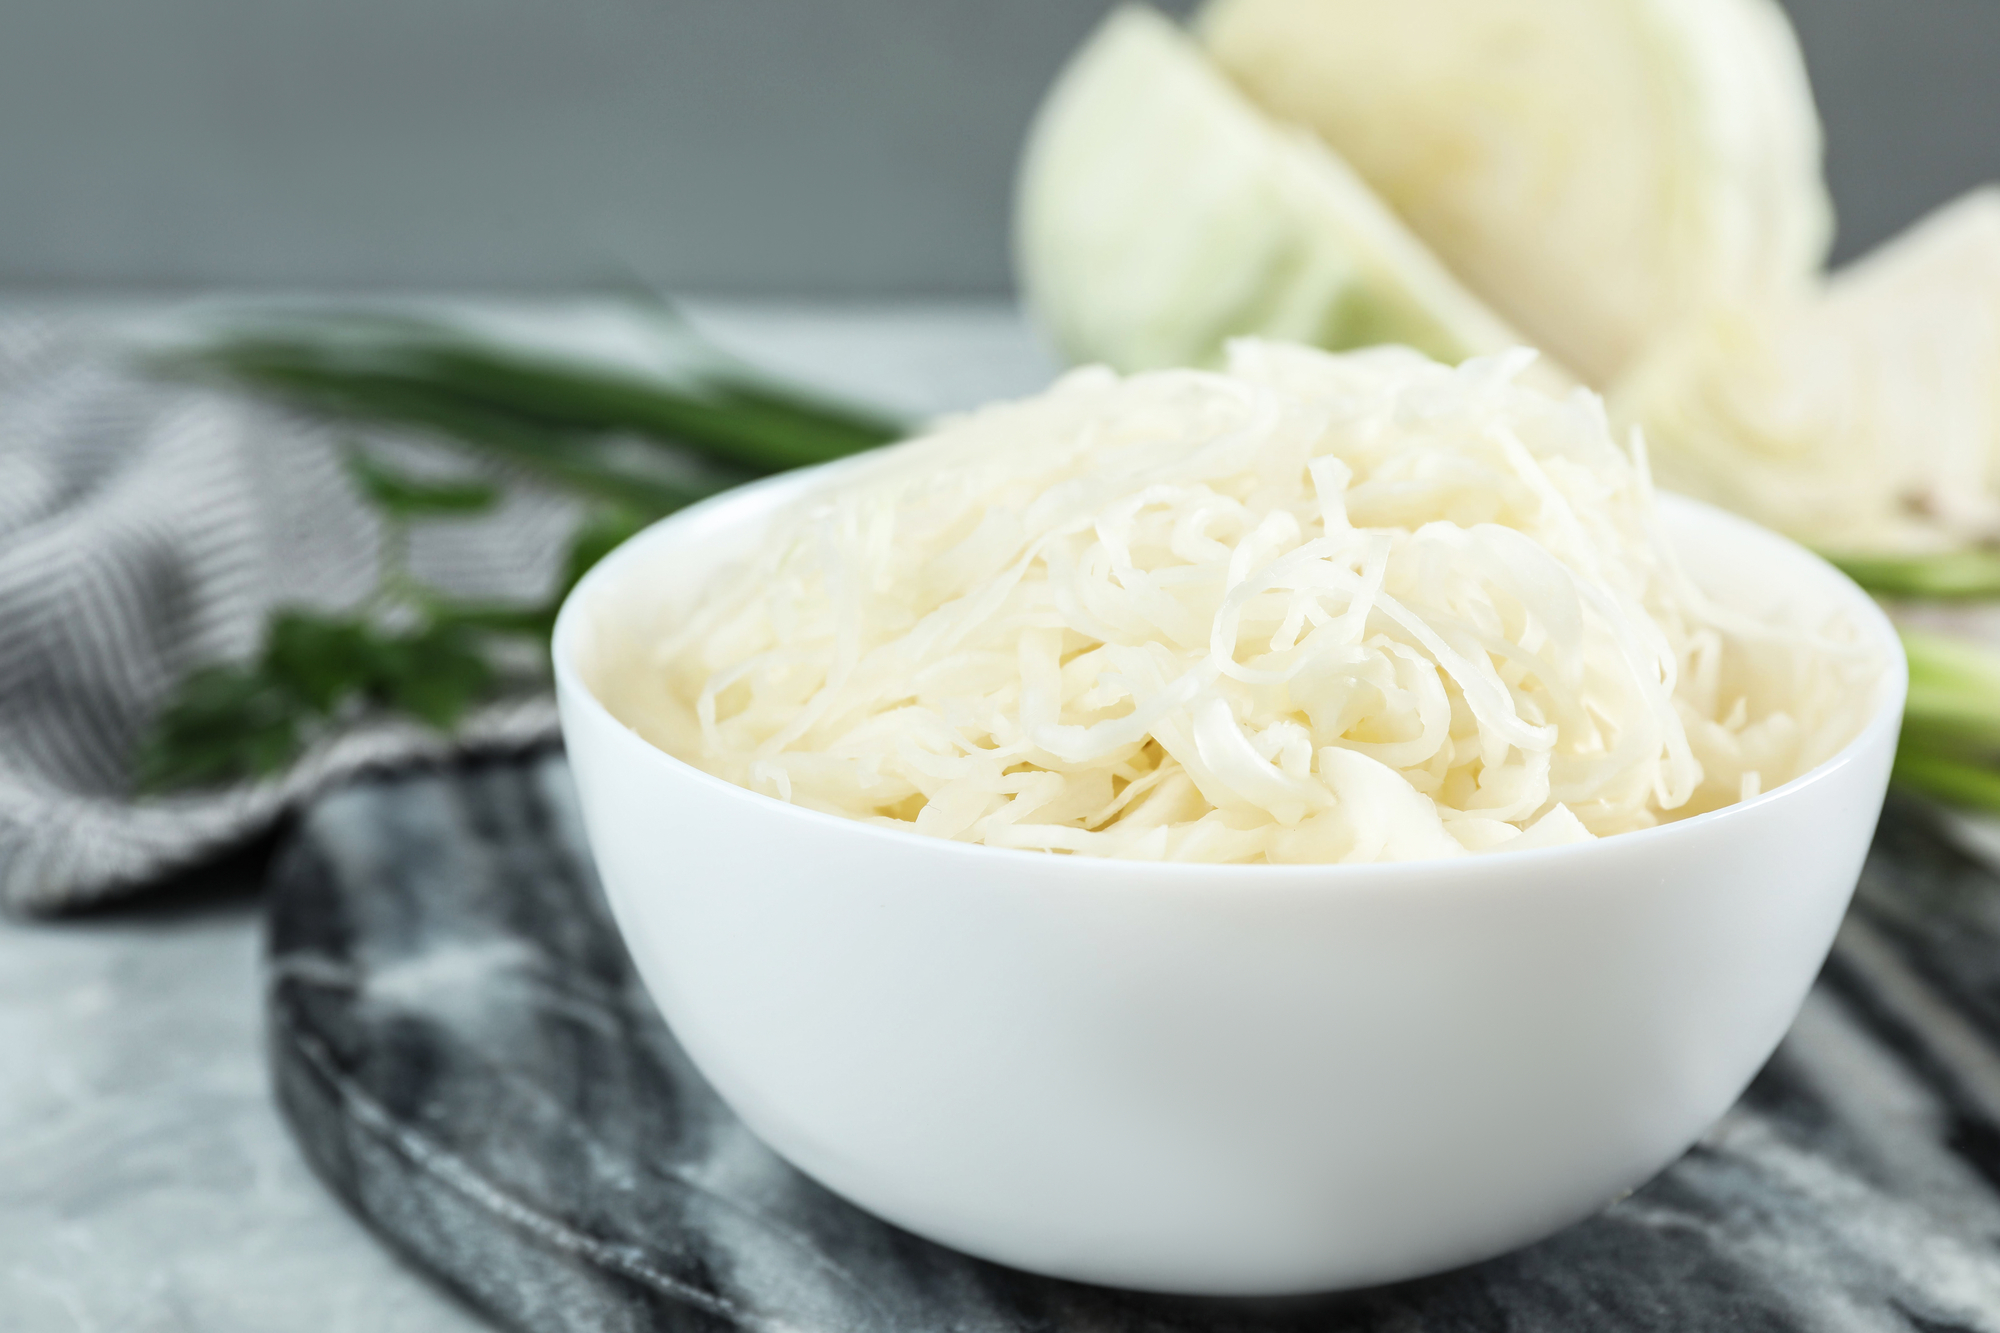 Tasty fermented cabbage on light grey table, closeup